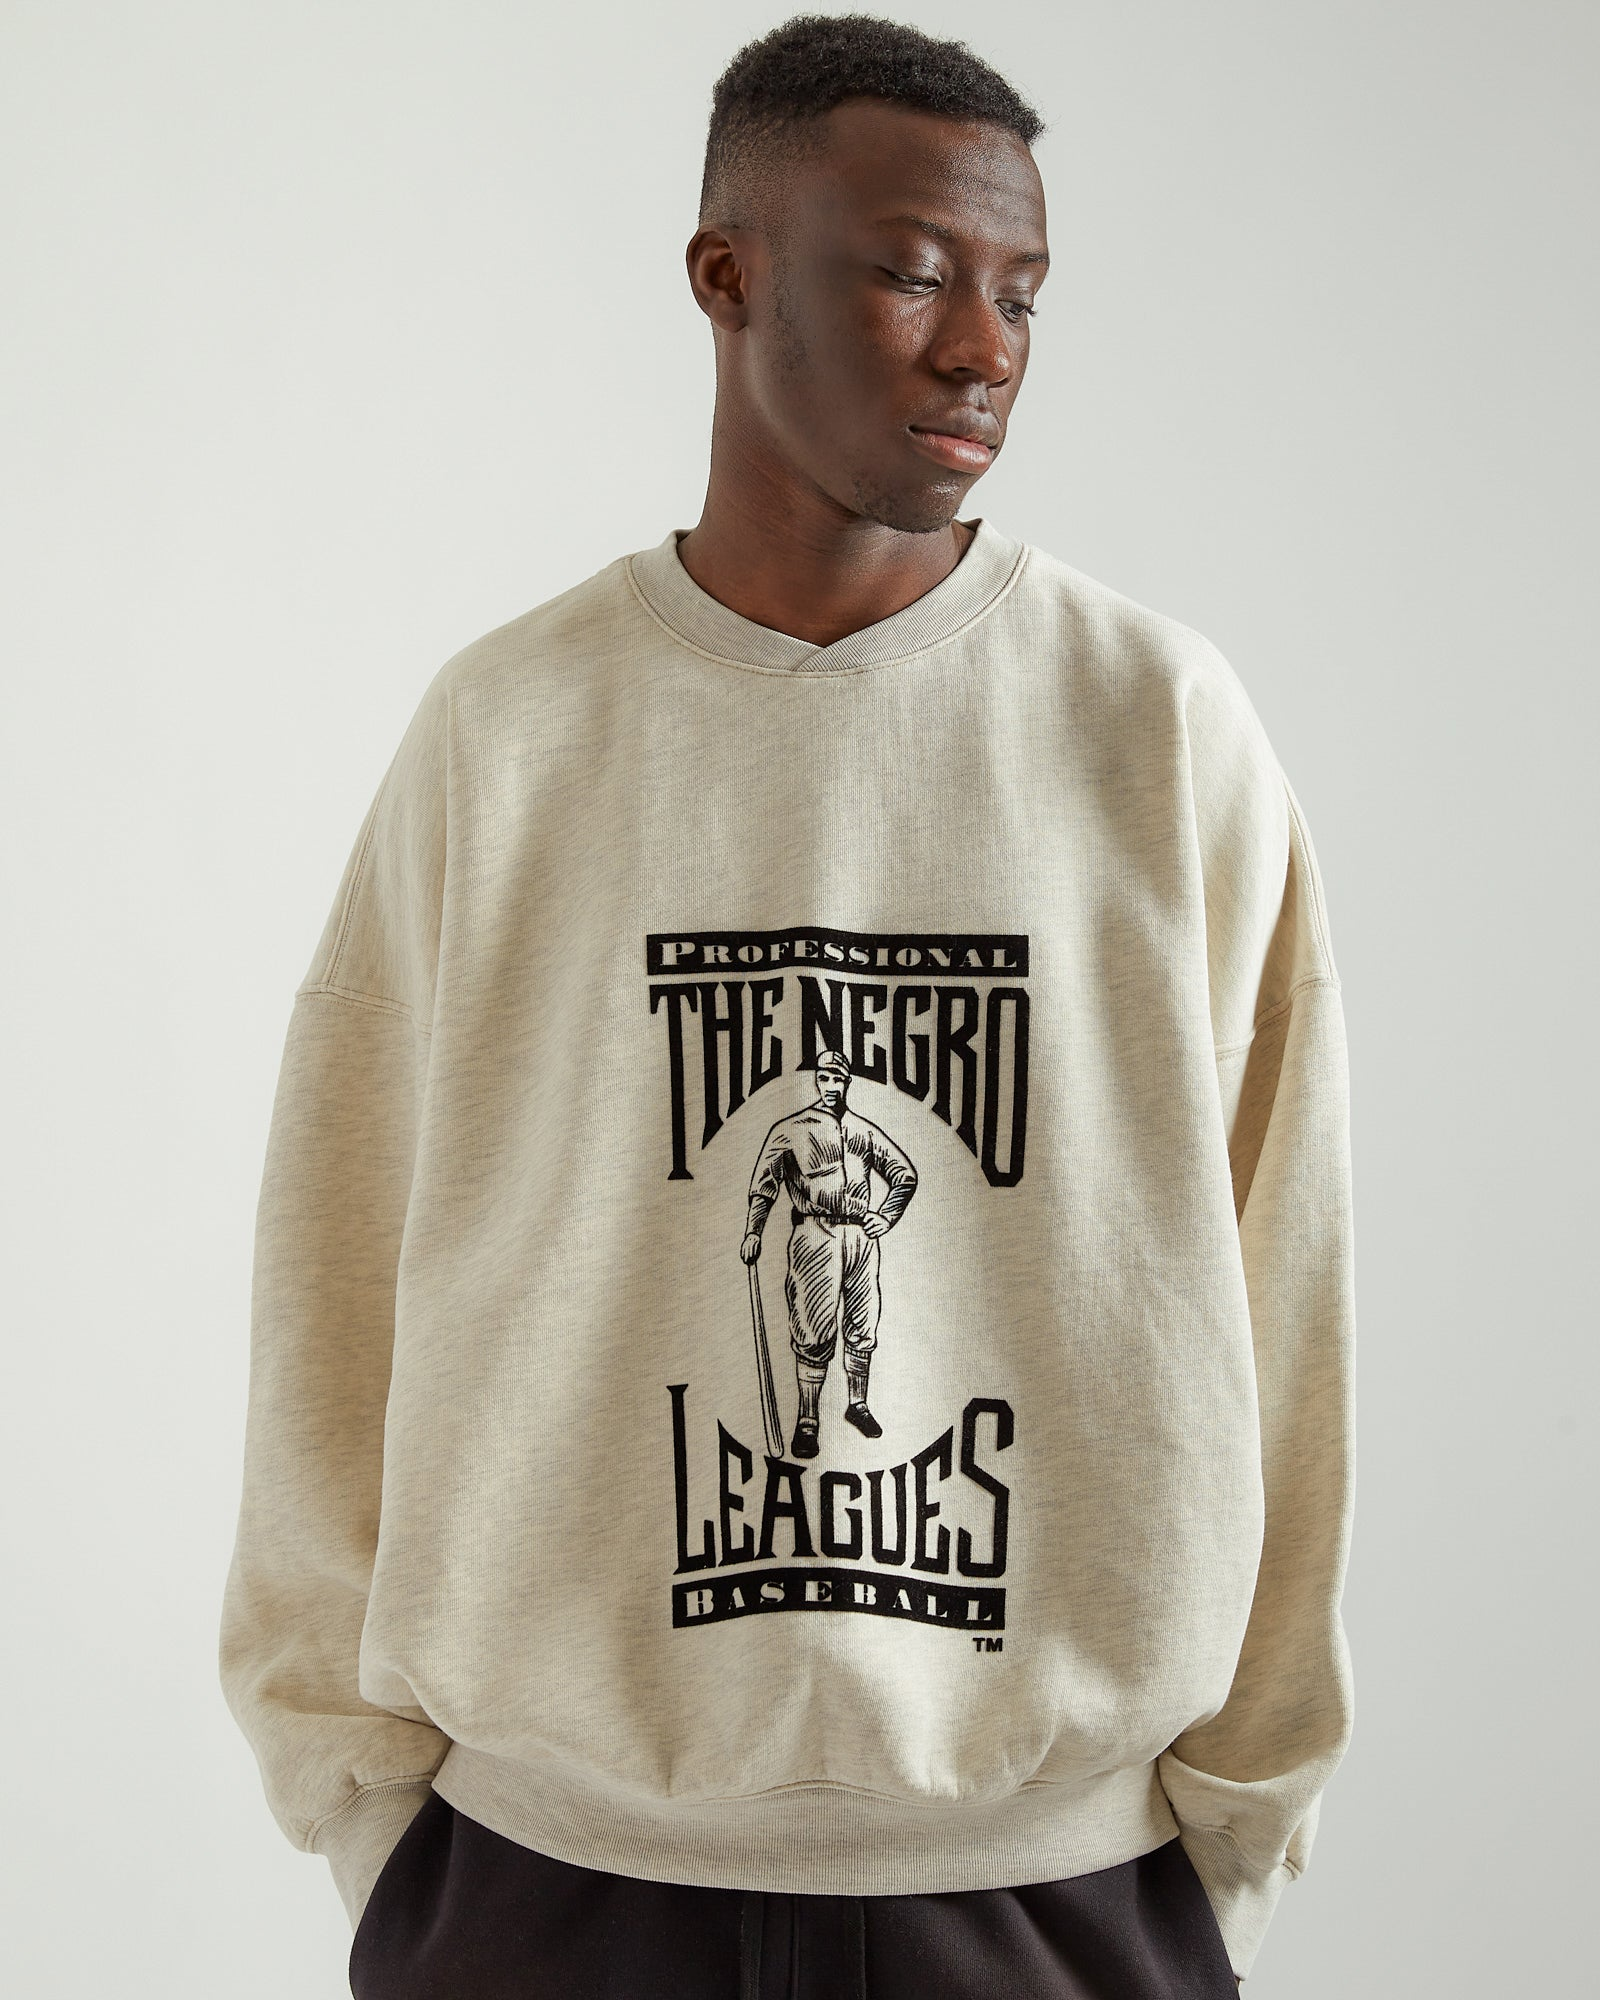 Felted Graphic Sweatshirt in Beige